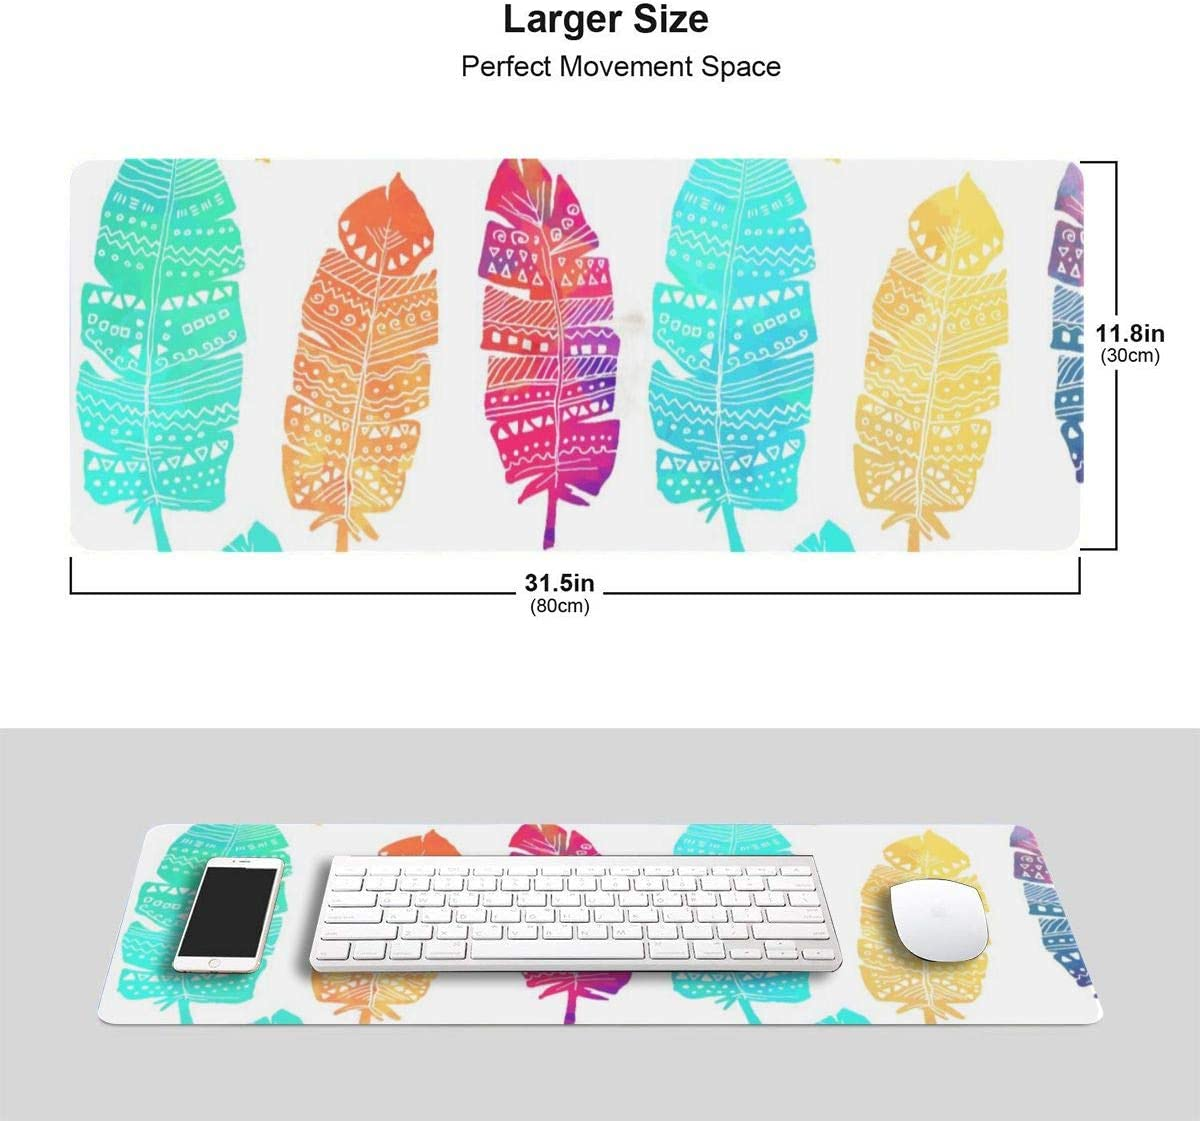 Painted Donut Professional Large Mouse Pad Keyboard Pad Long Extended Multipurpose Computer Game Mouse Mat